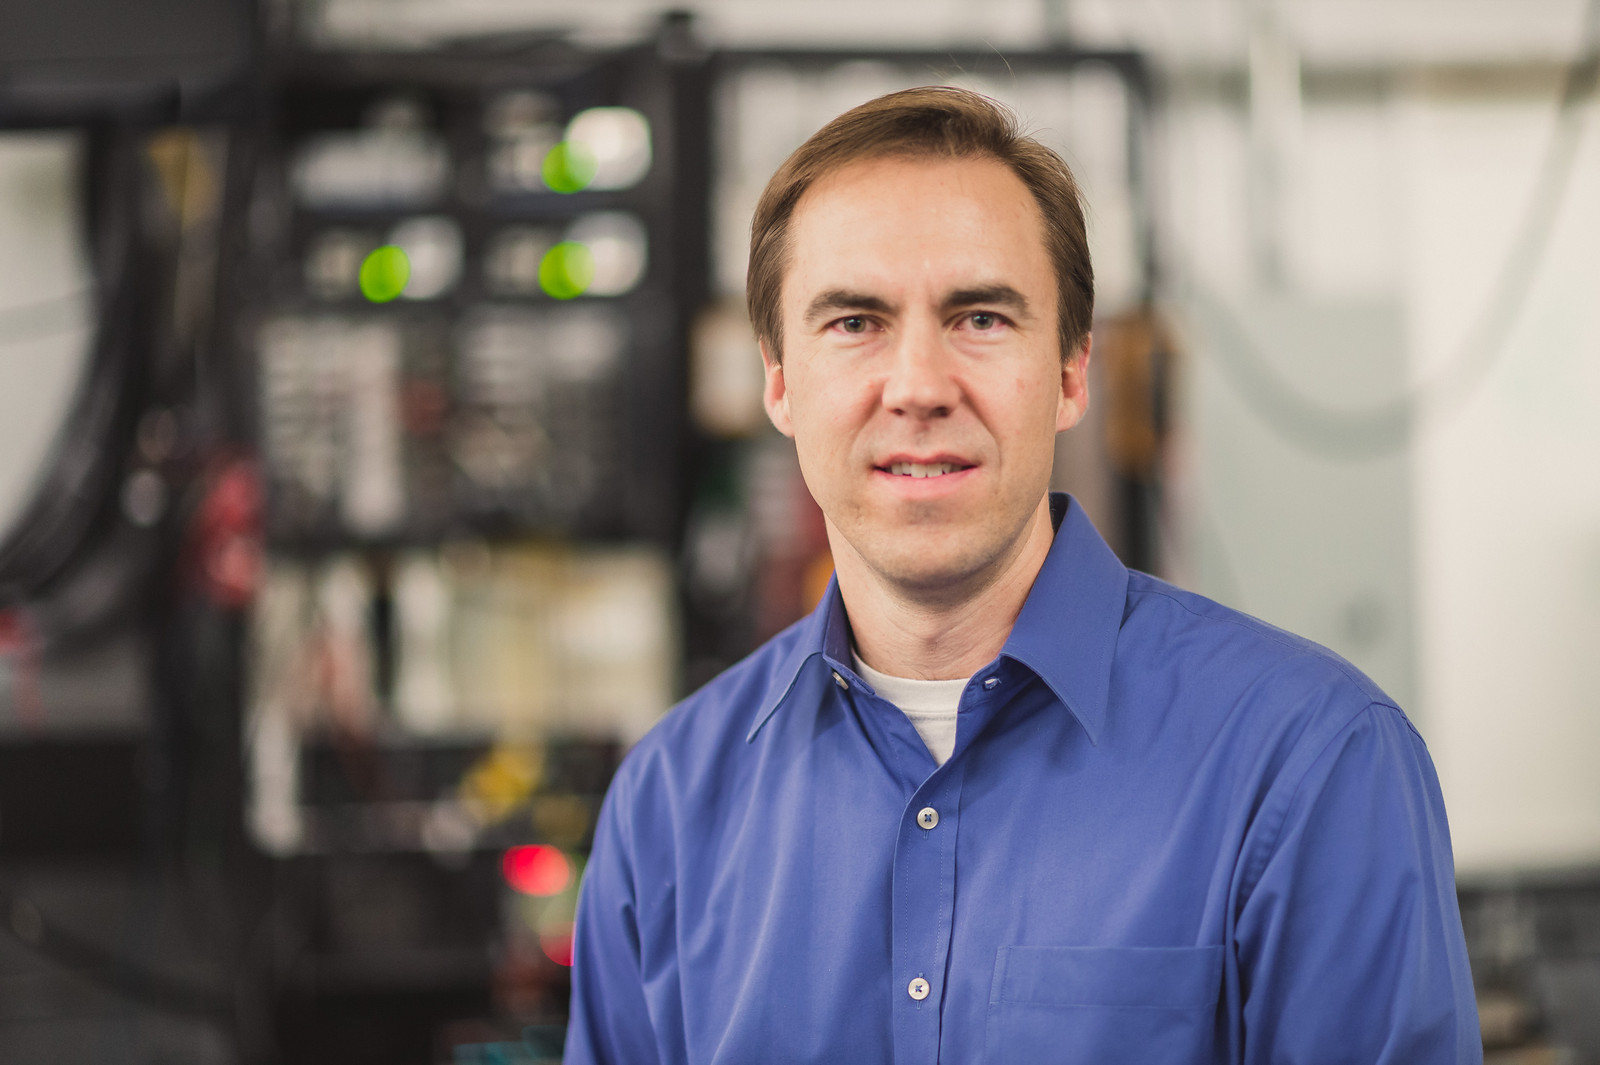 A man in a blue shirt with blurred background of equipment in a mechanical engineering aerospace lab smiles at the camera.